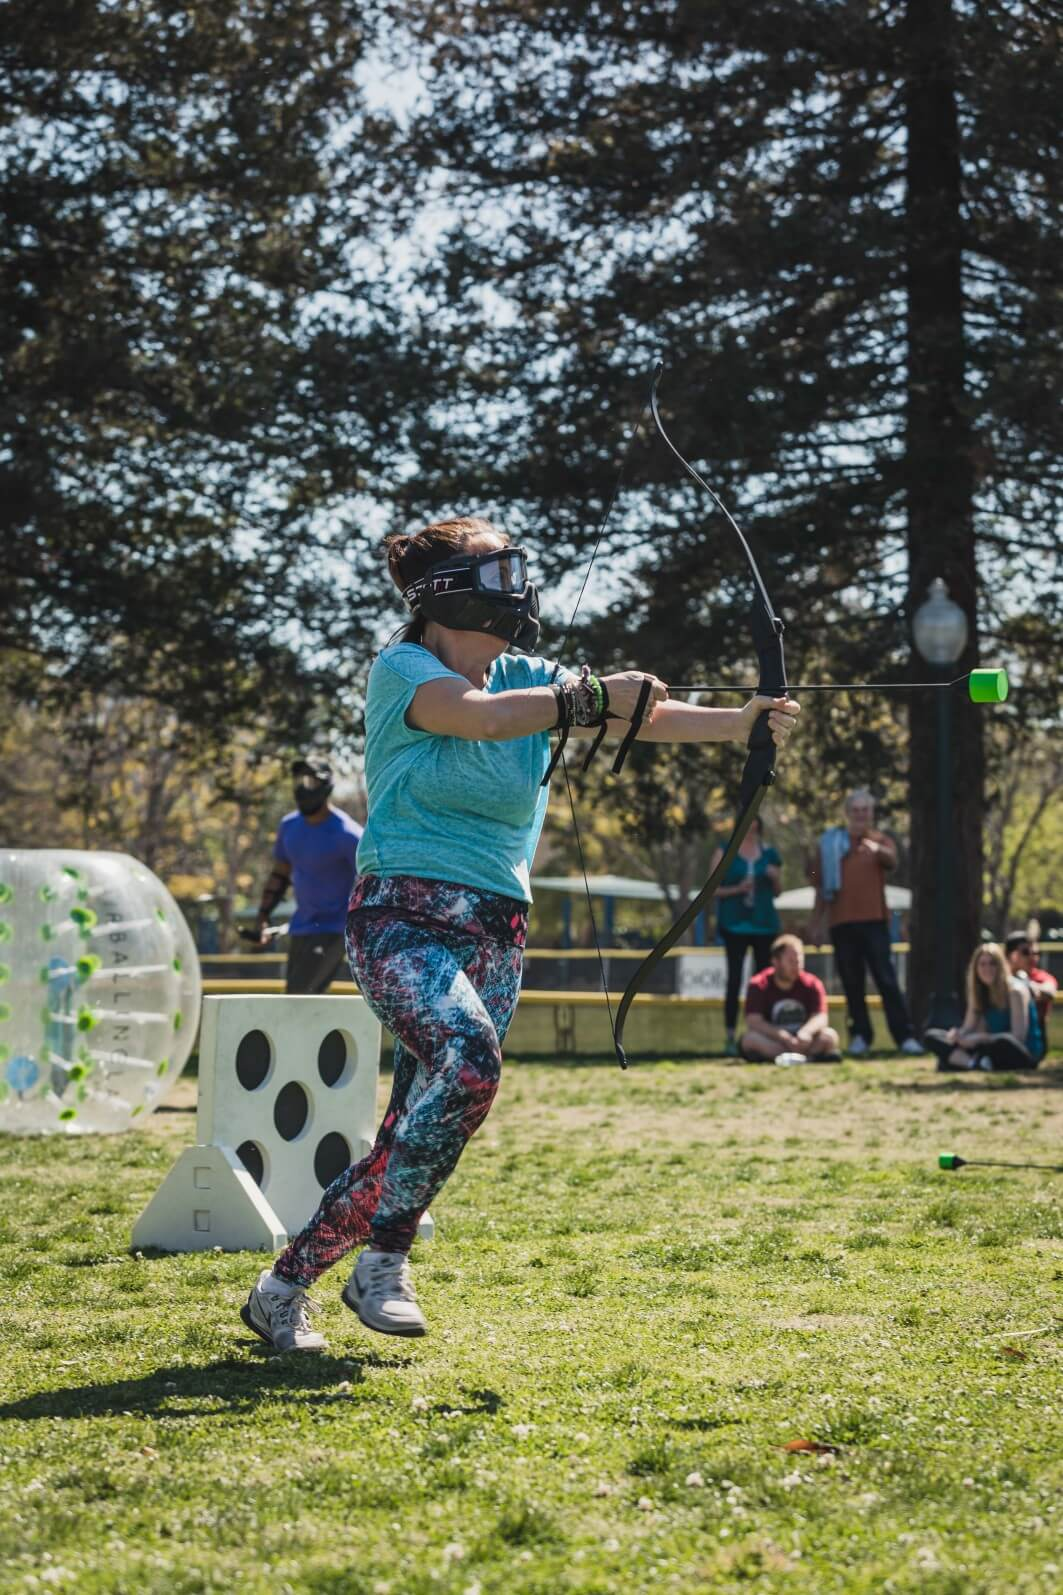 RUN AND SHOOT | Archery Tag by AirballingLA